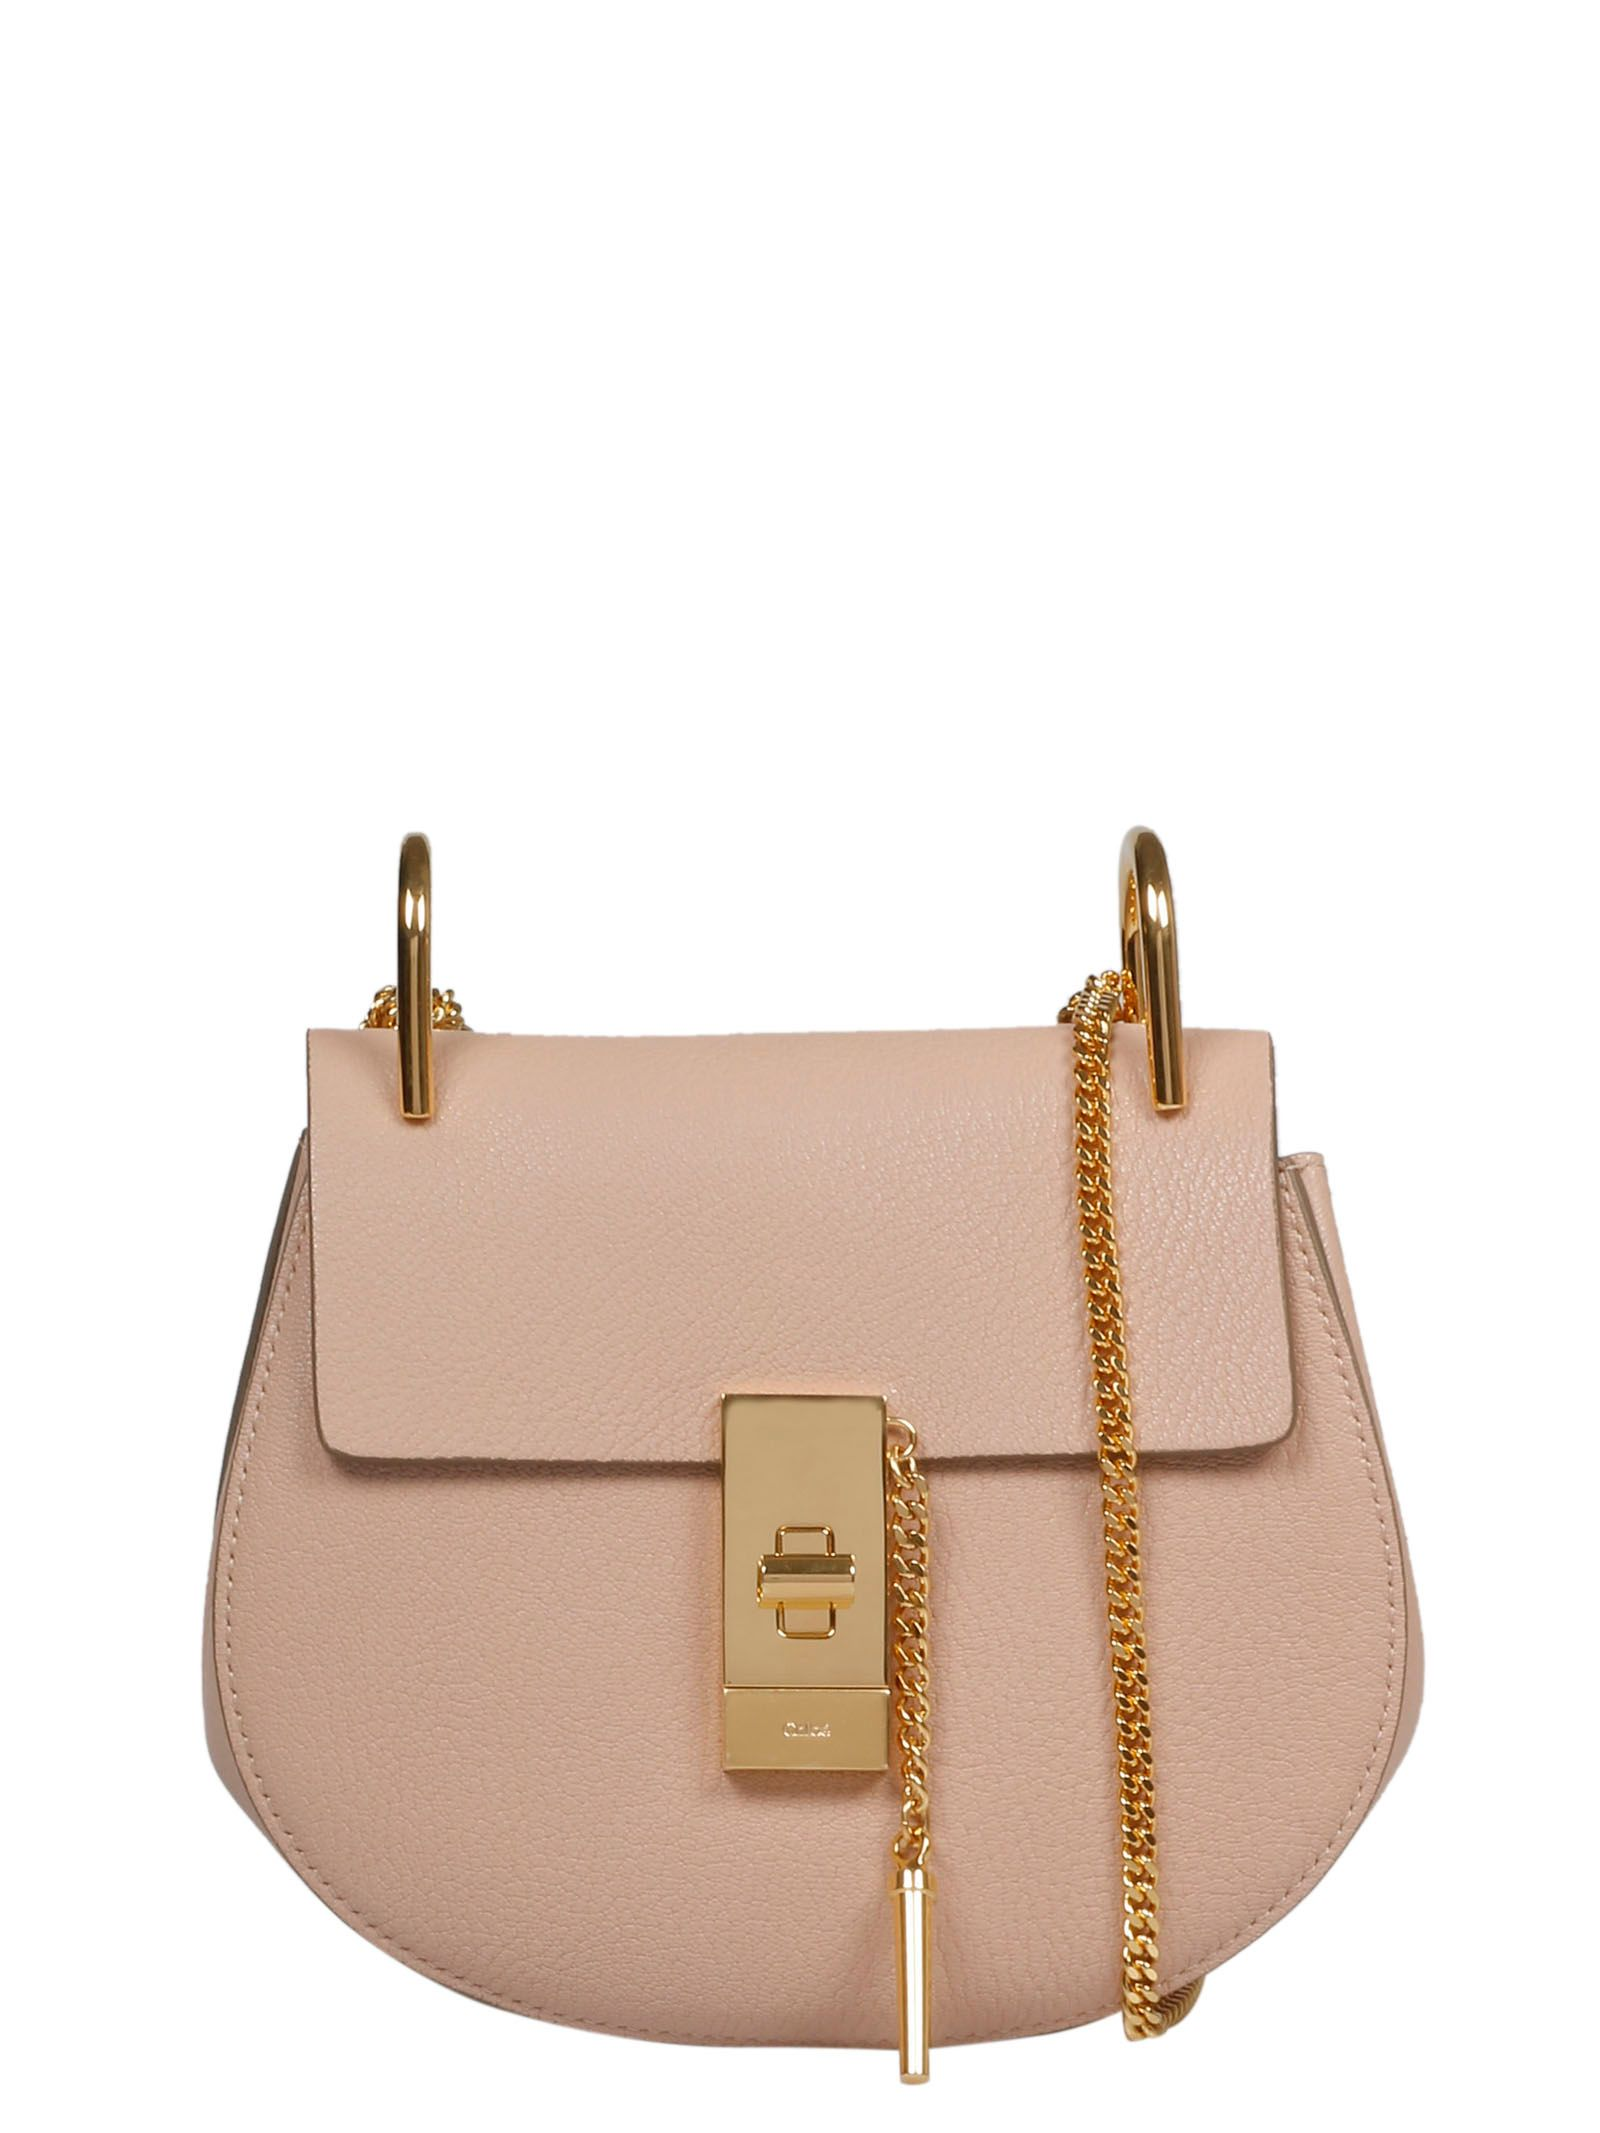 Chloé Leathers CHLO WOMEN'S CHC14WS0329446J5 PINK LEATHER SHOULDER BAG